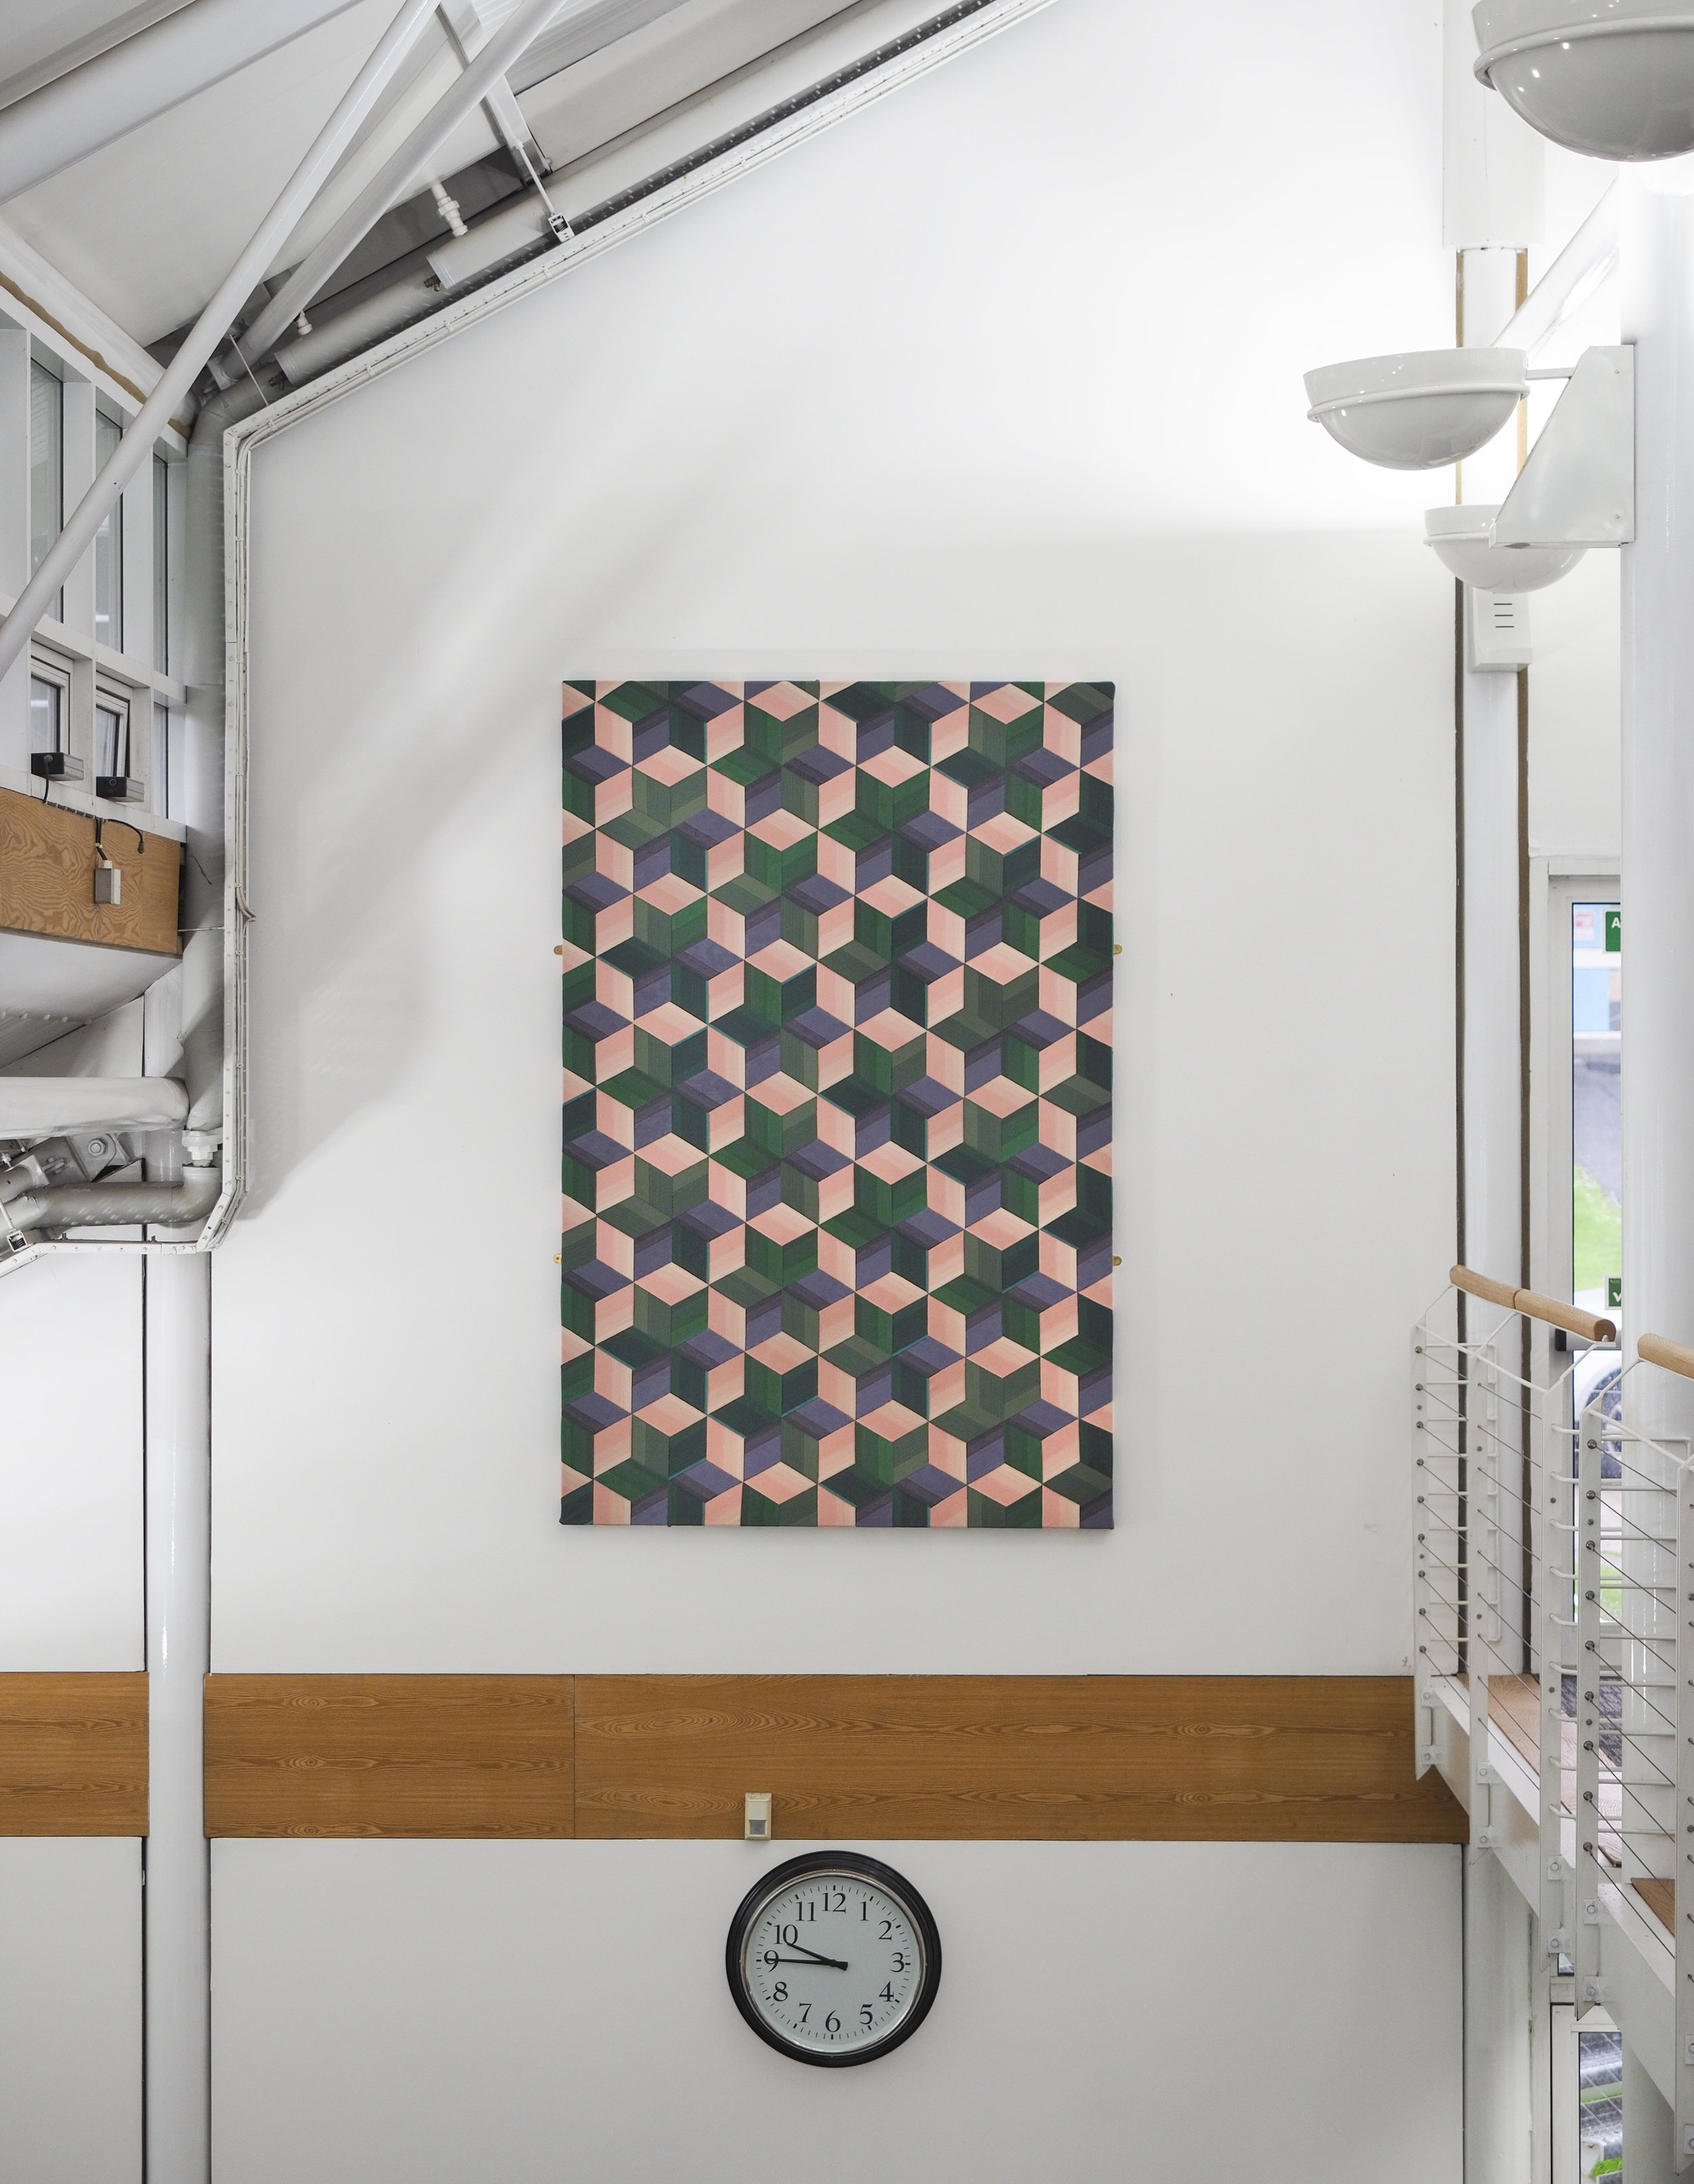 'The Trinity Weave' wall hanging commission for University of Wales Trinity Saint David Carmarthen Campus library. 2018. Handwoven cotton and linen. 230x150cm.